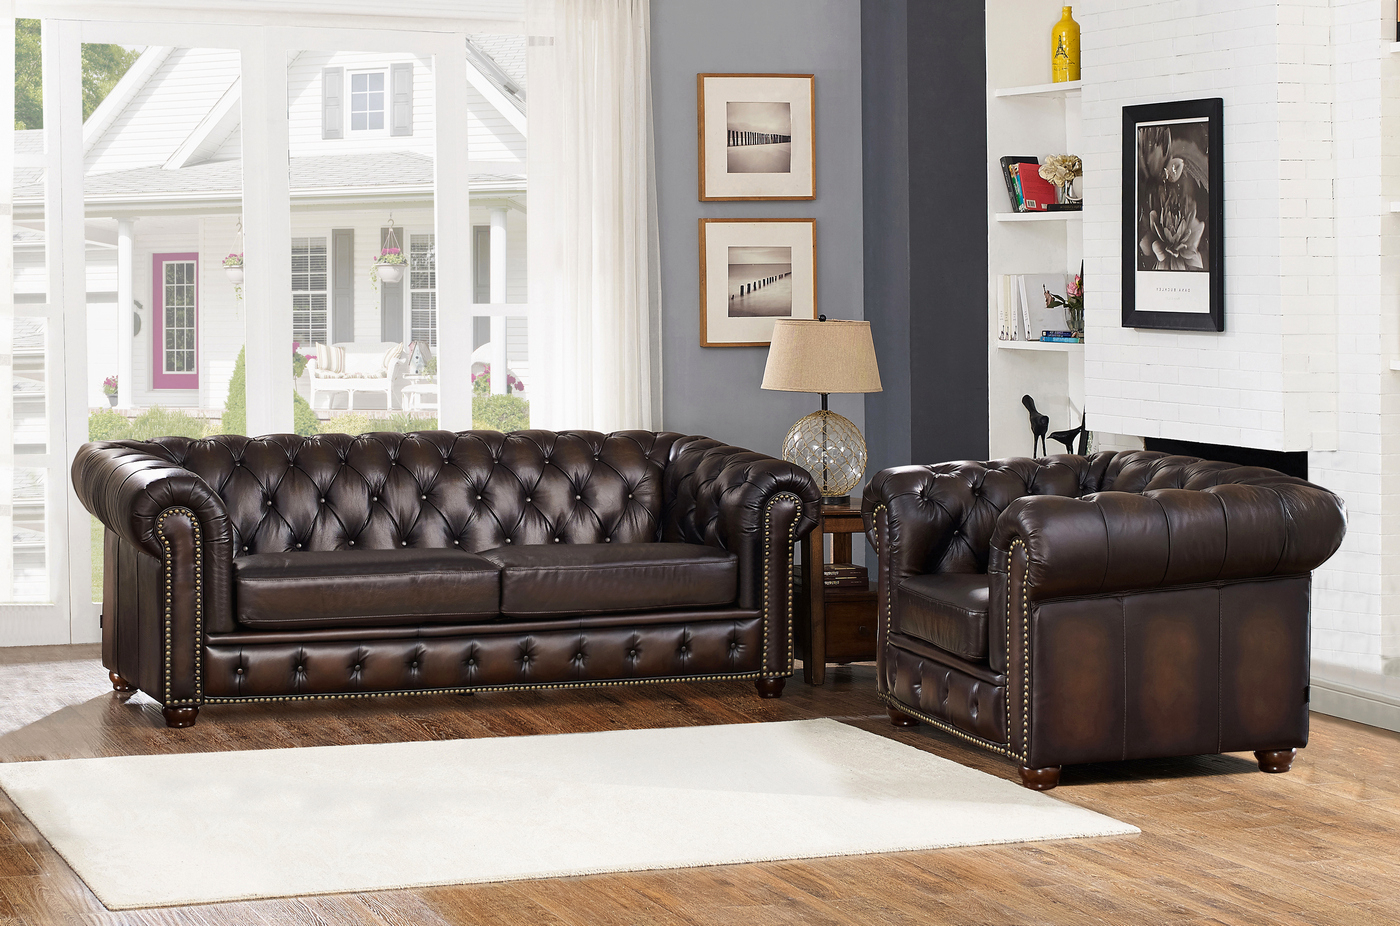 Albany Dark Brown Chesterfield Sofa & Chair In 100% For Leather Chesterfield Sofas (View 12 of 15)